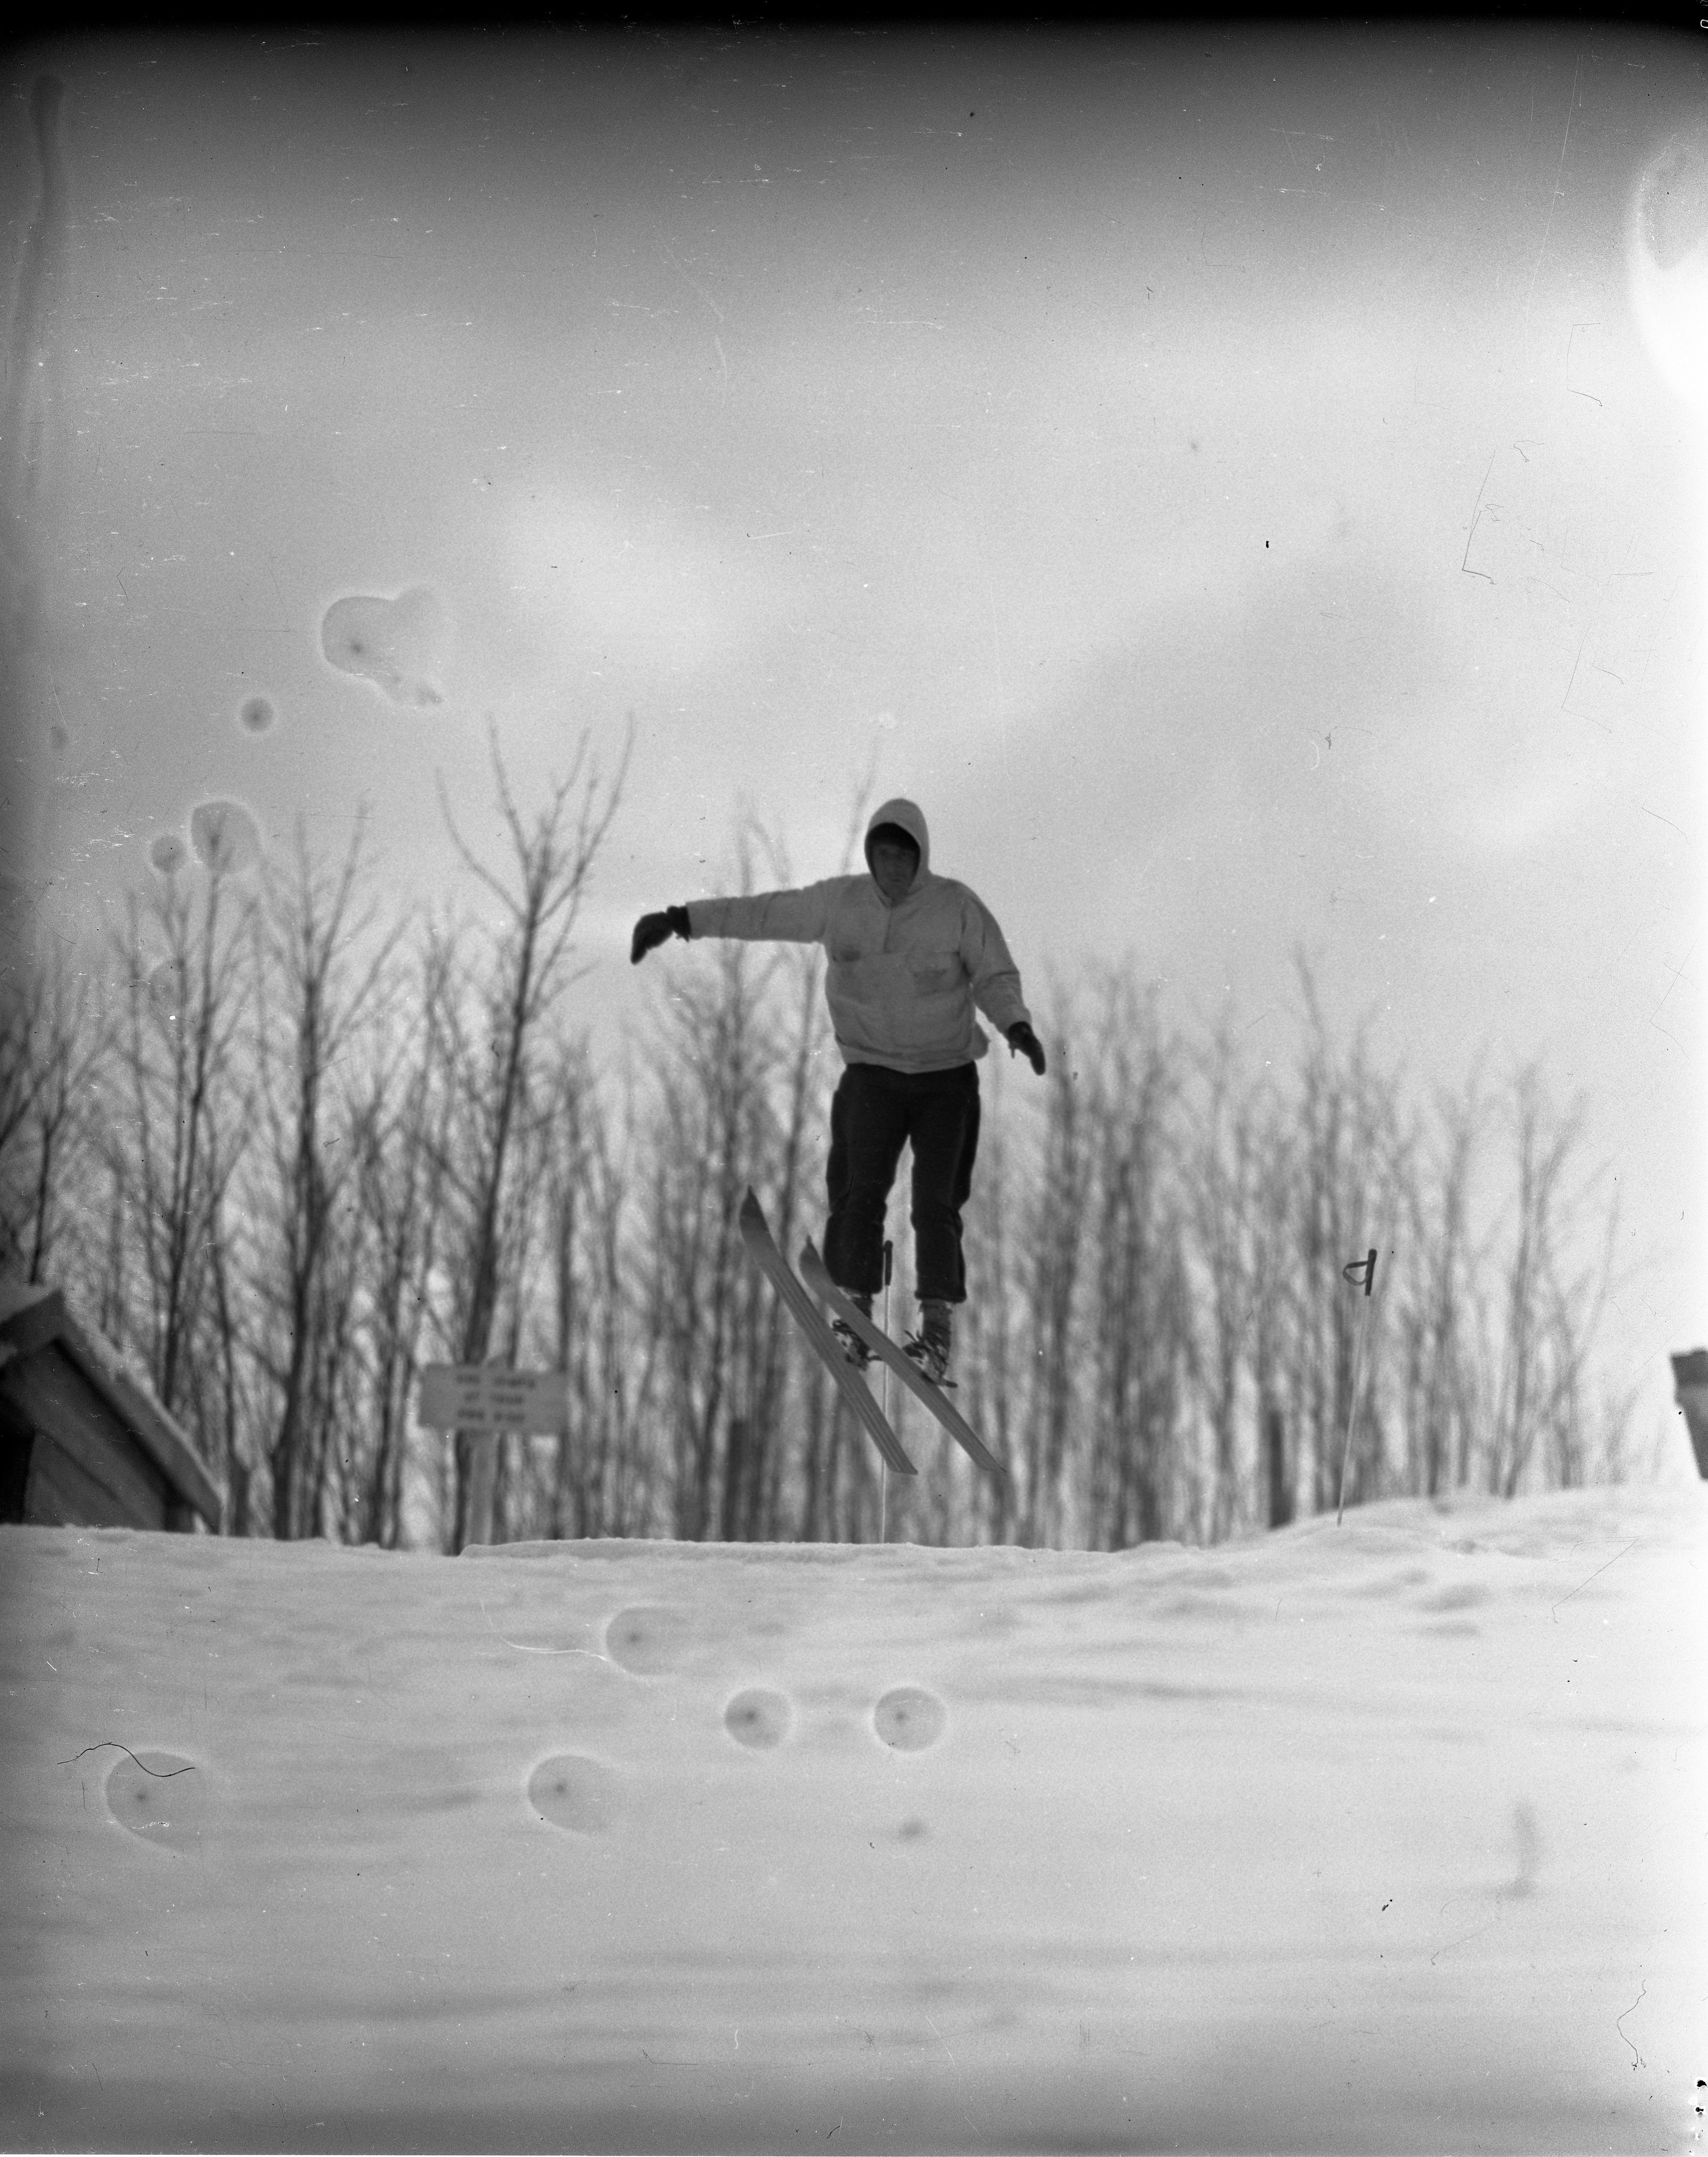 Skier In Air At Caberfae, February 1940 image